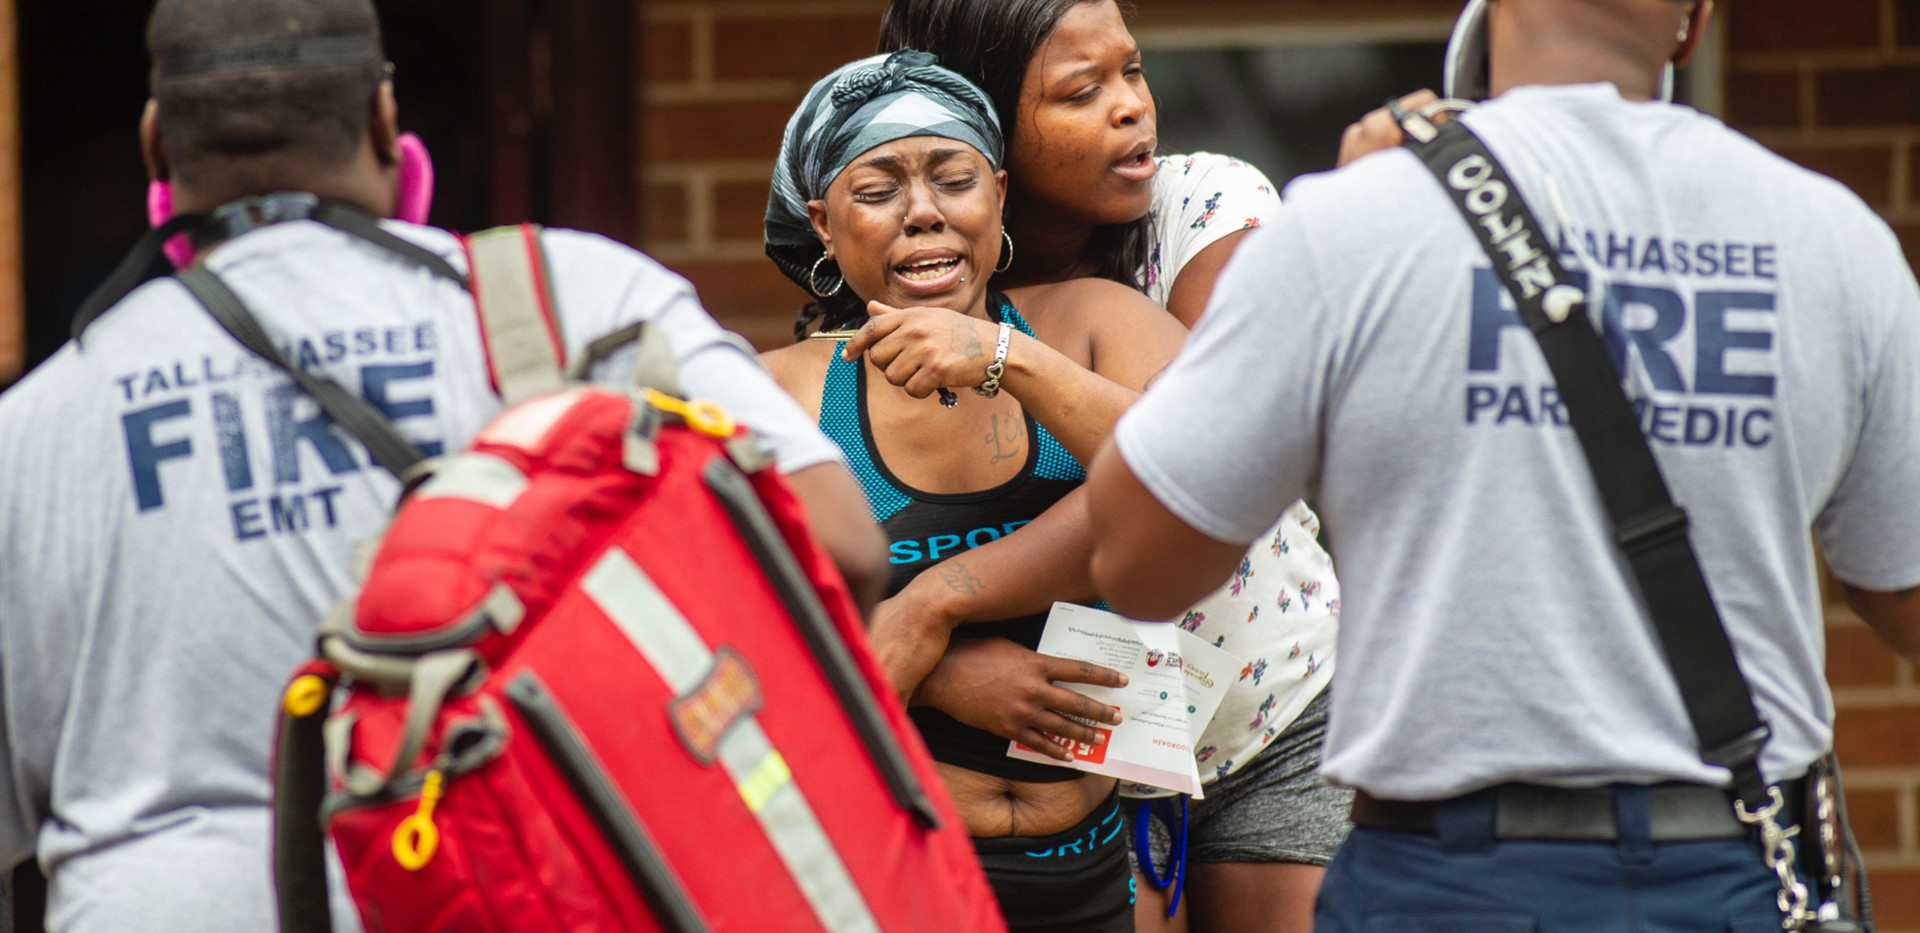 Jennifer Jackson sobs as she leaves a first floor apartment in the Holton Street apartment complex Wednesday, May 27, 2020. Jackson's son, Malik Jackson, 21, was stabbed and killed moments earlier.